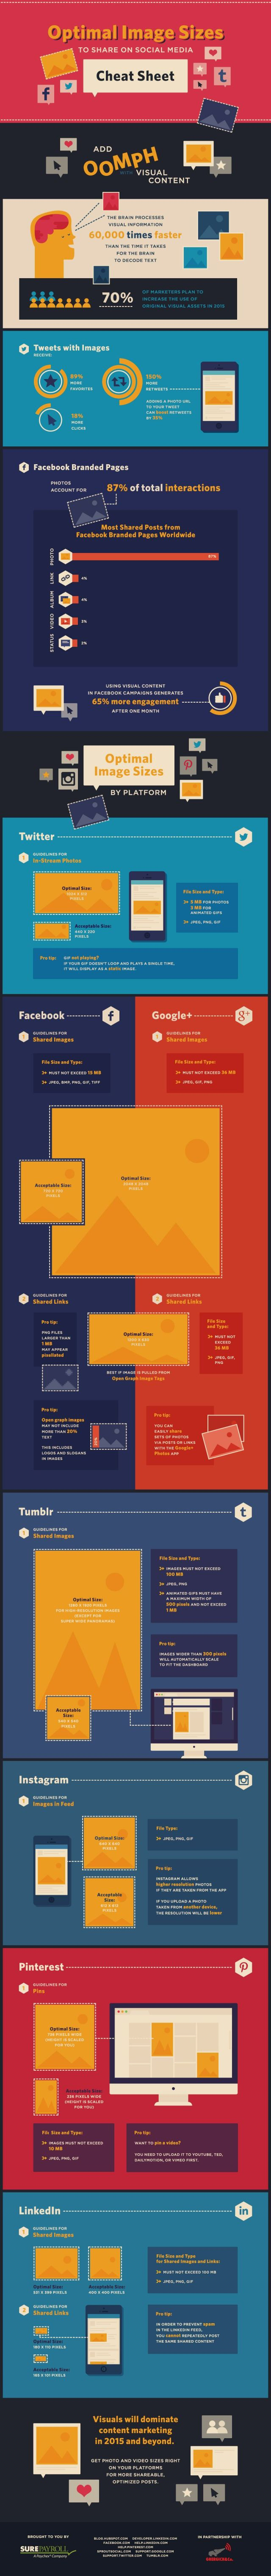 Optimal Image Sizes to Share on Social Media Cheat Sheet #infographic